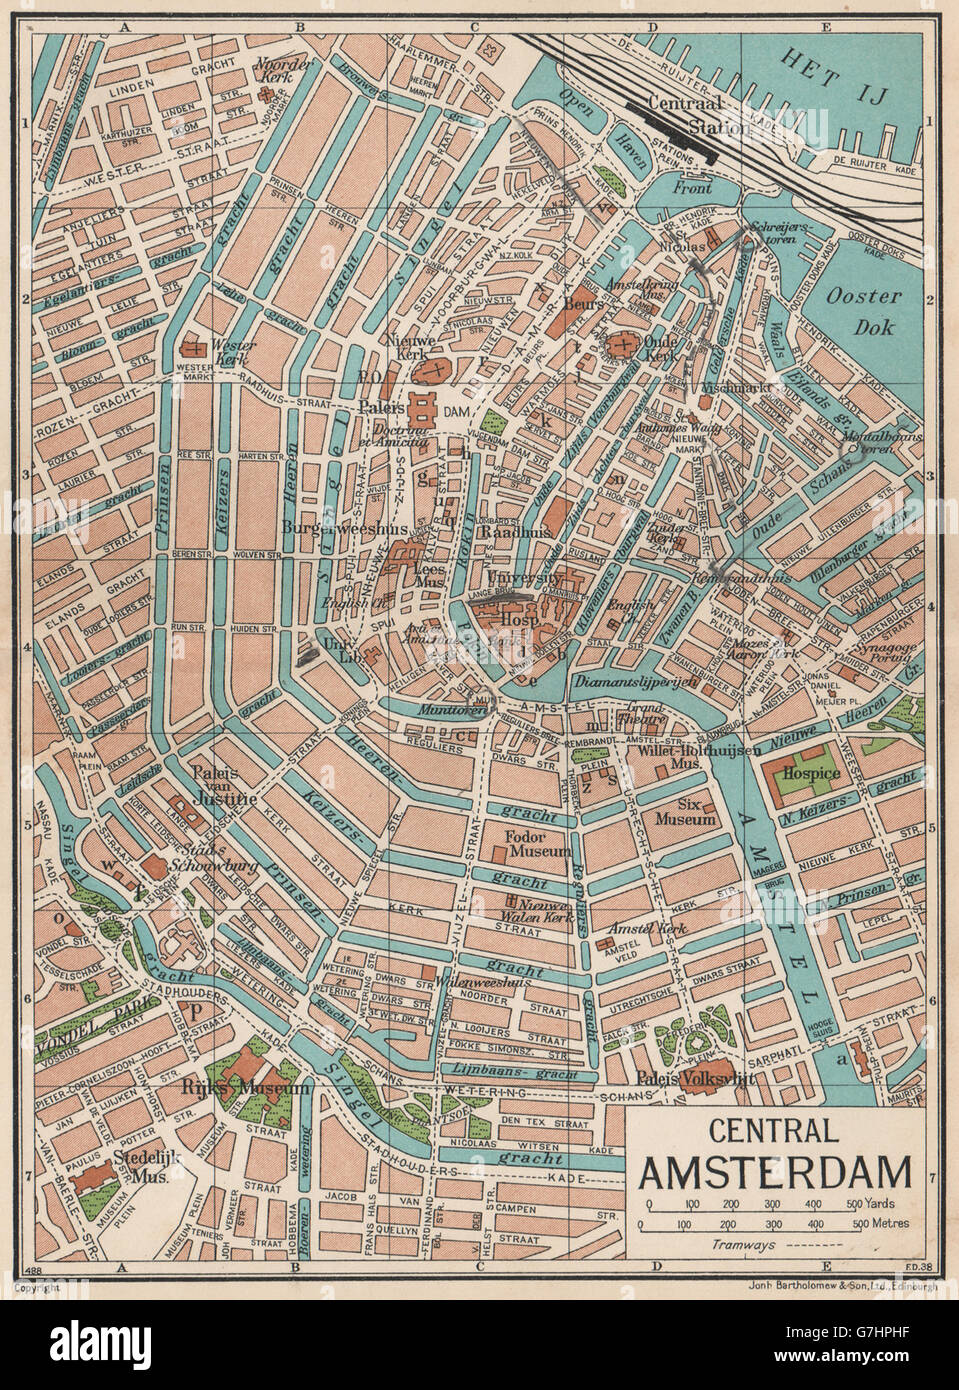 Central Amsterdam Vintage Town City Map Plan Netherlands 1933